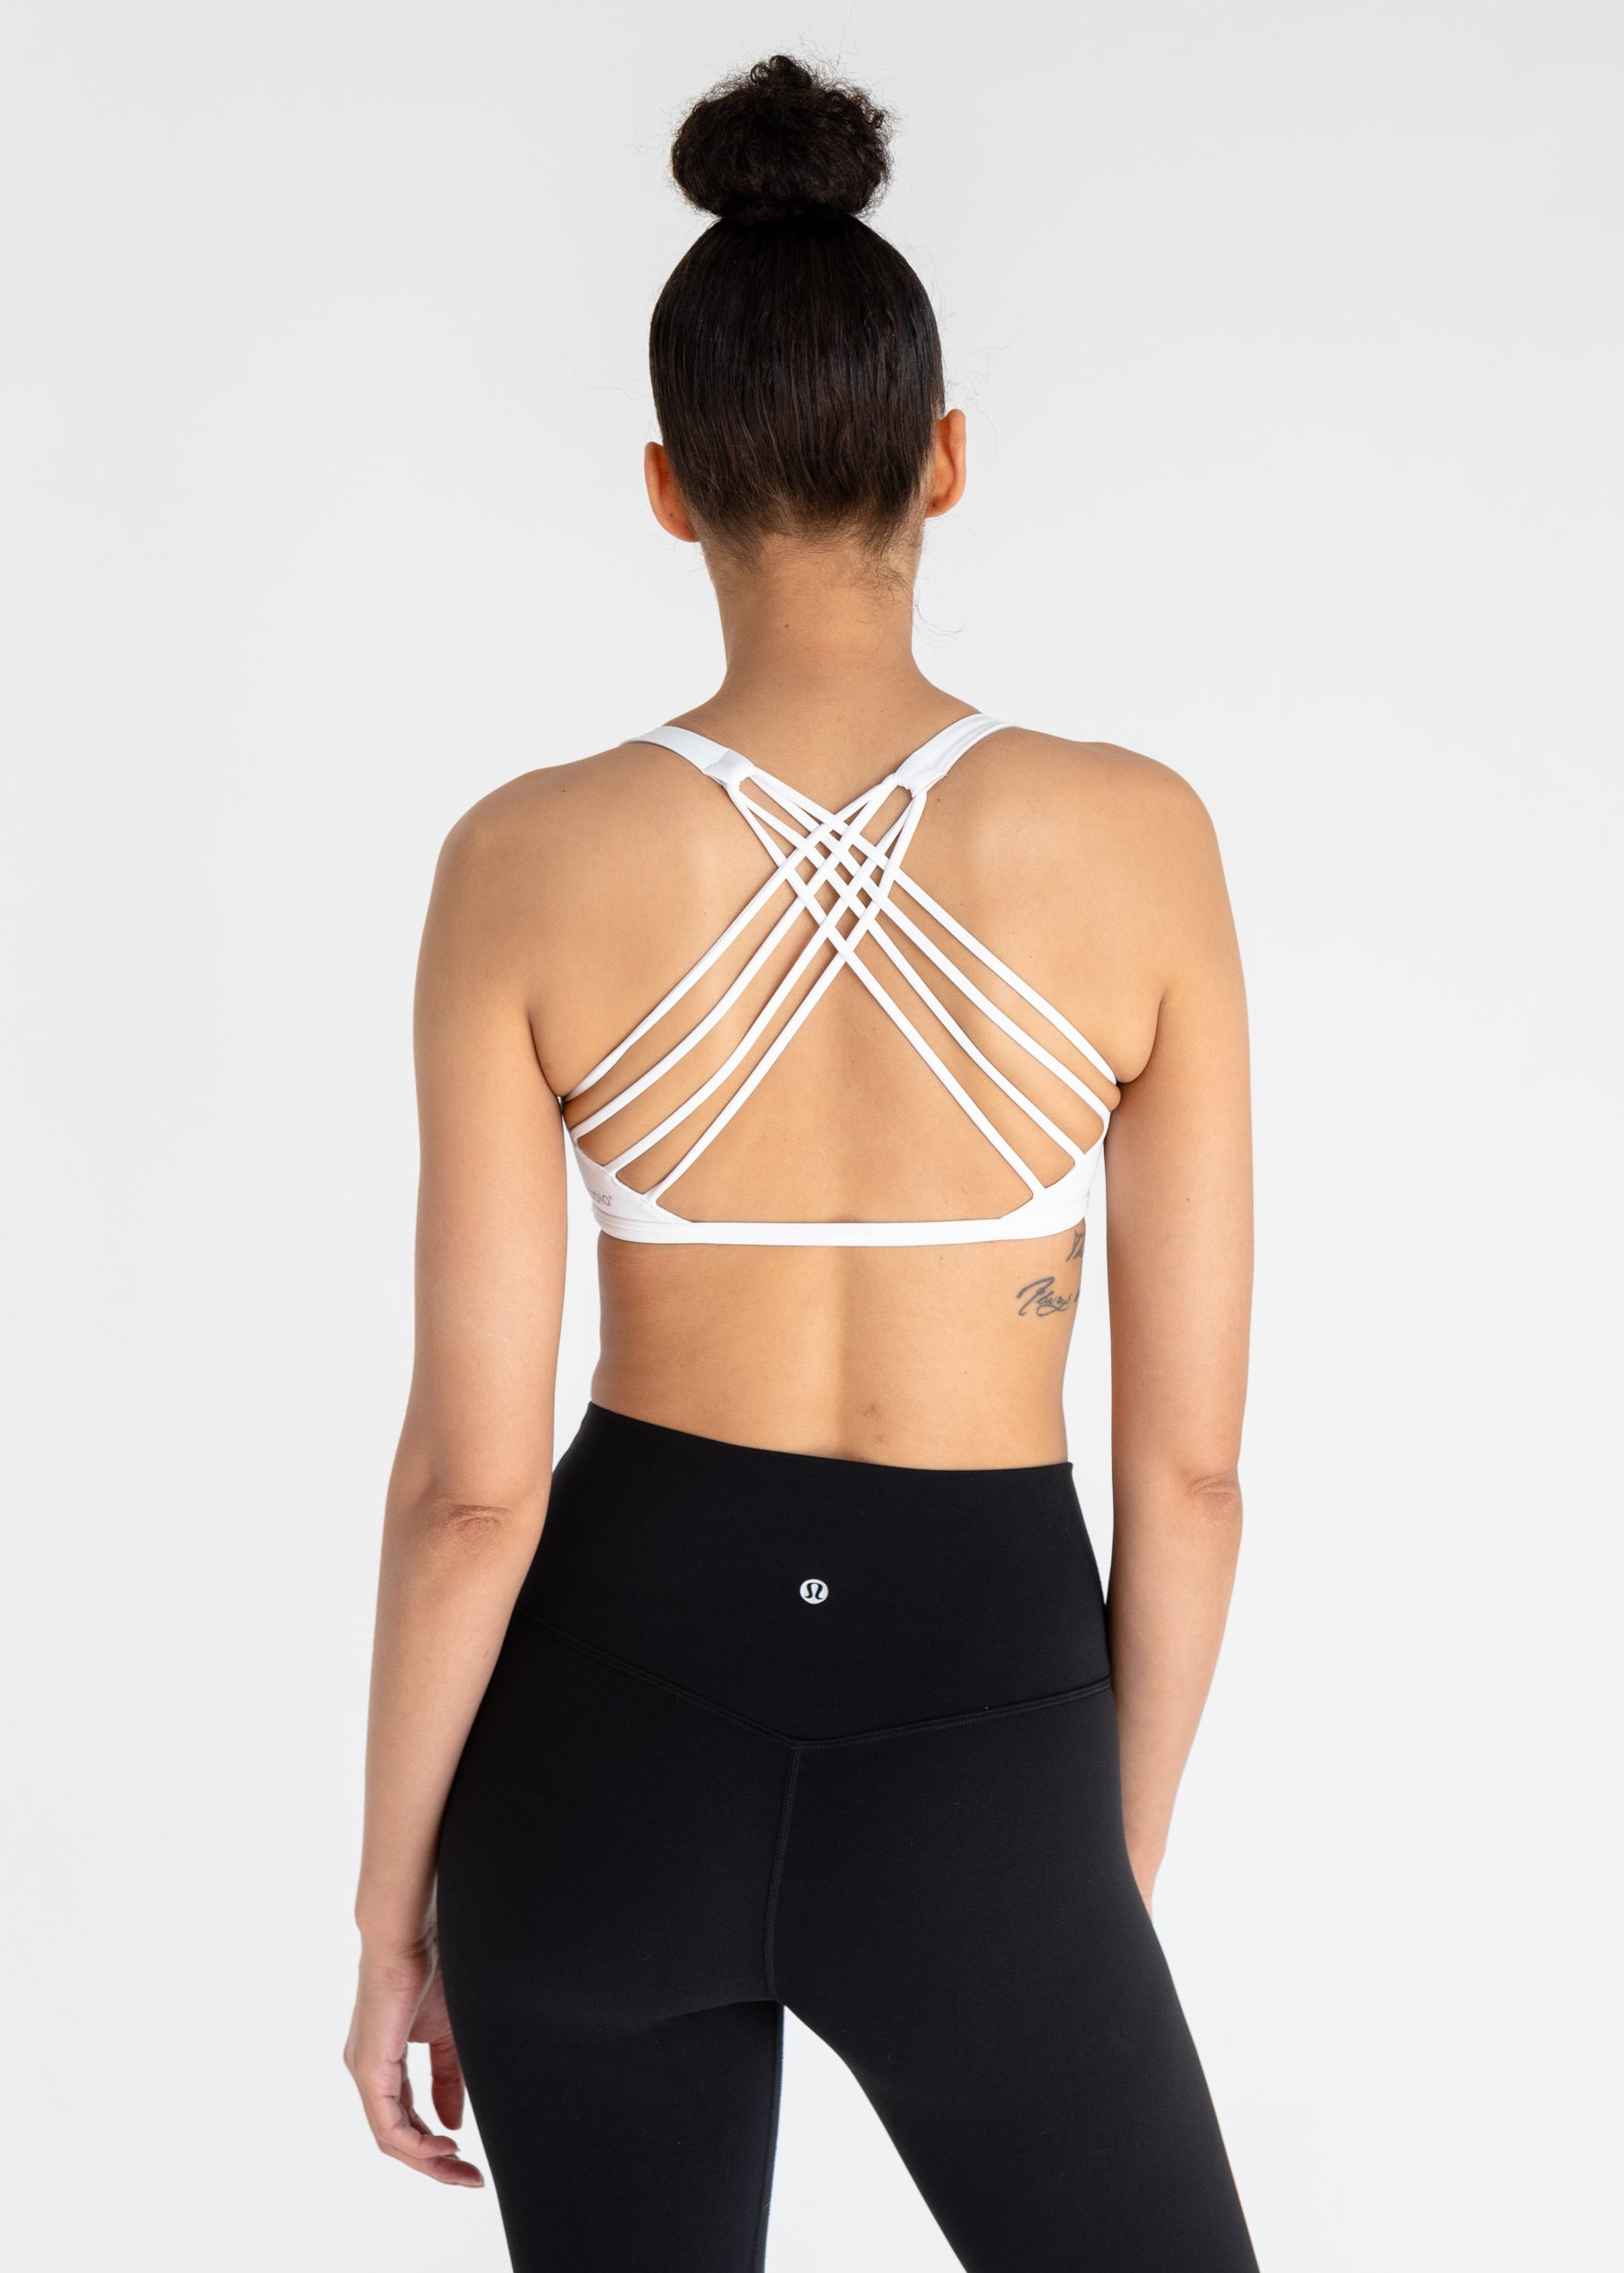 Y7 / Lululemon Free To Be Wild Bra